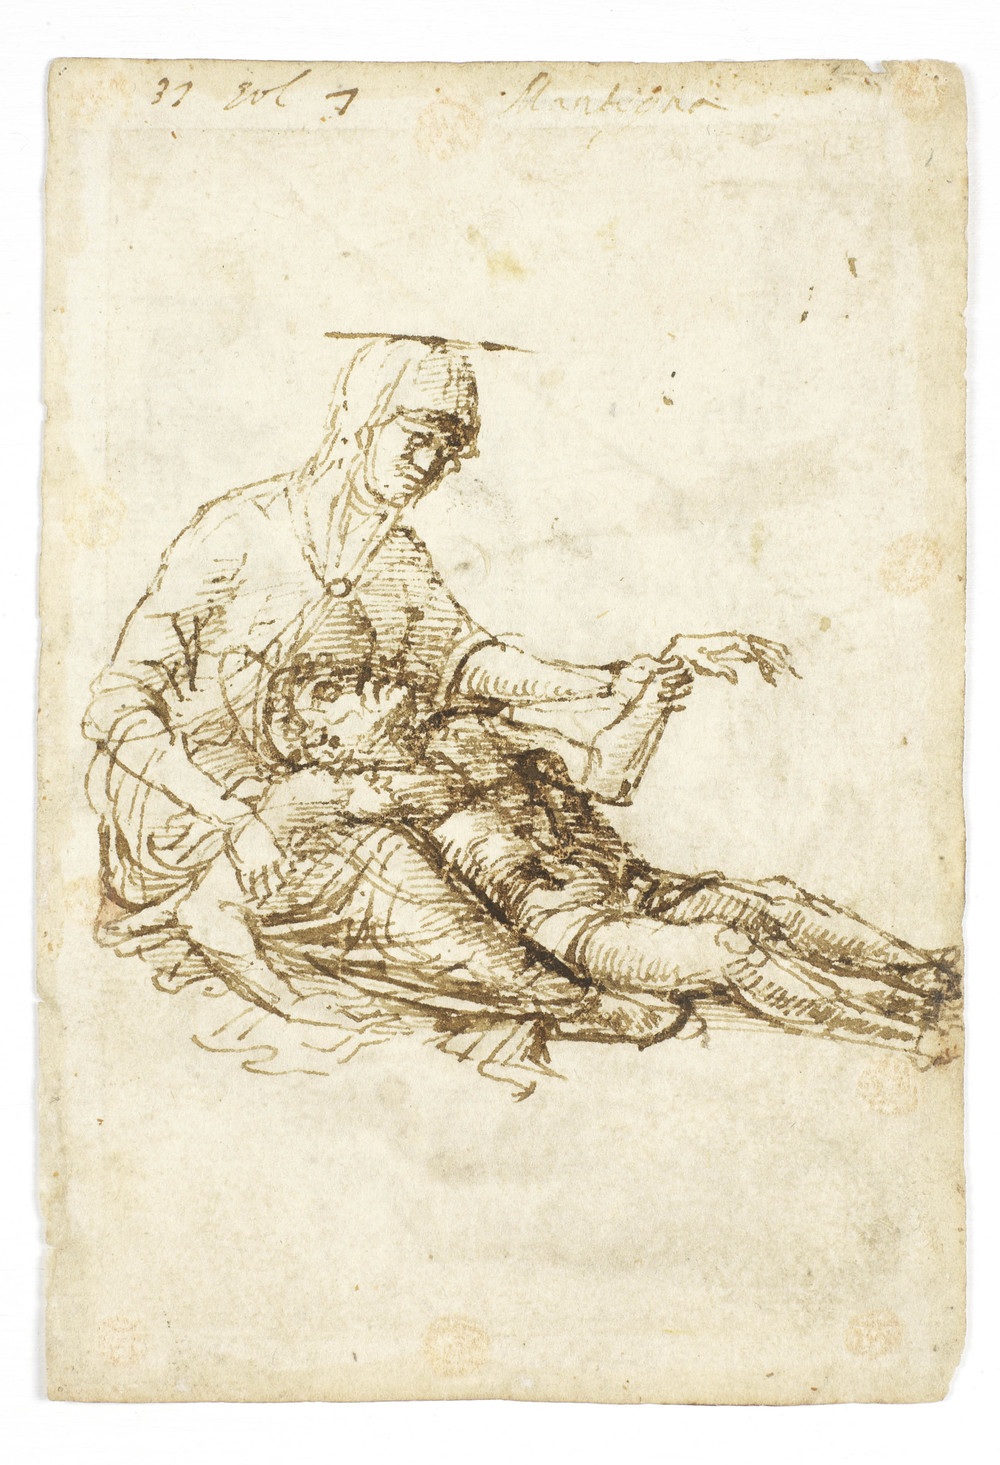 Study for Pieta, Andrea Mantegna(ca 1460, unpublished)